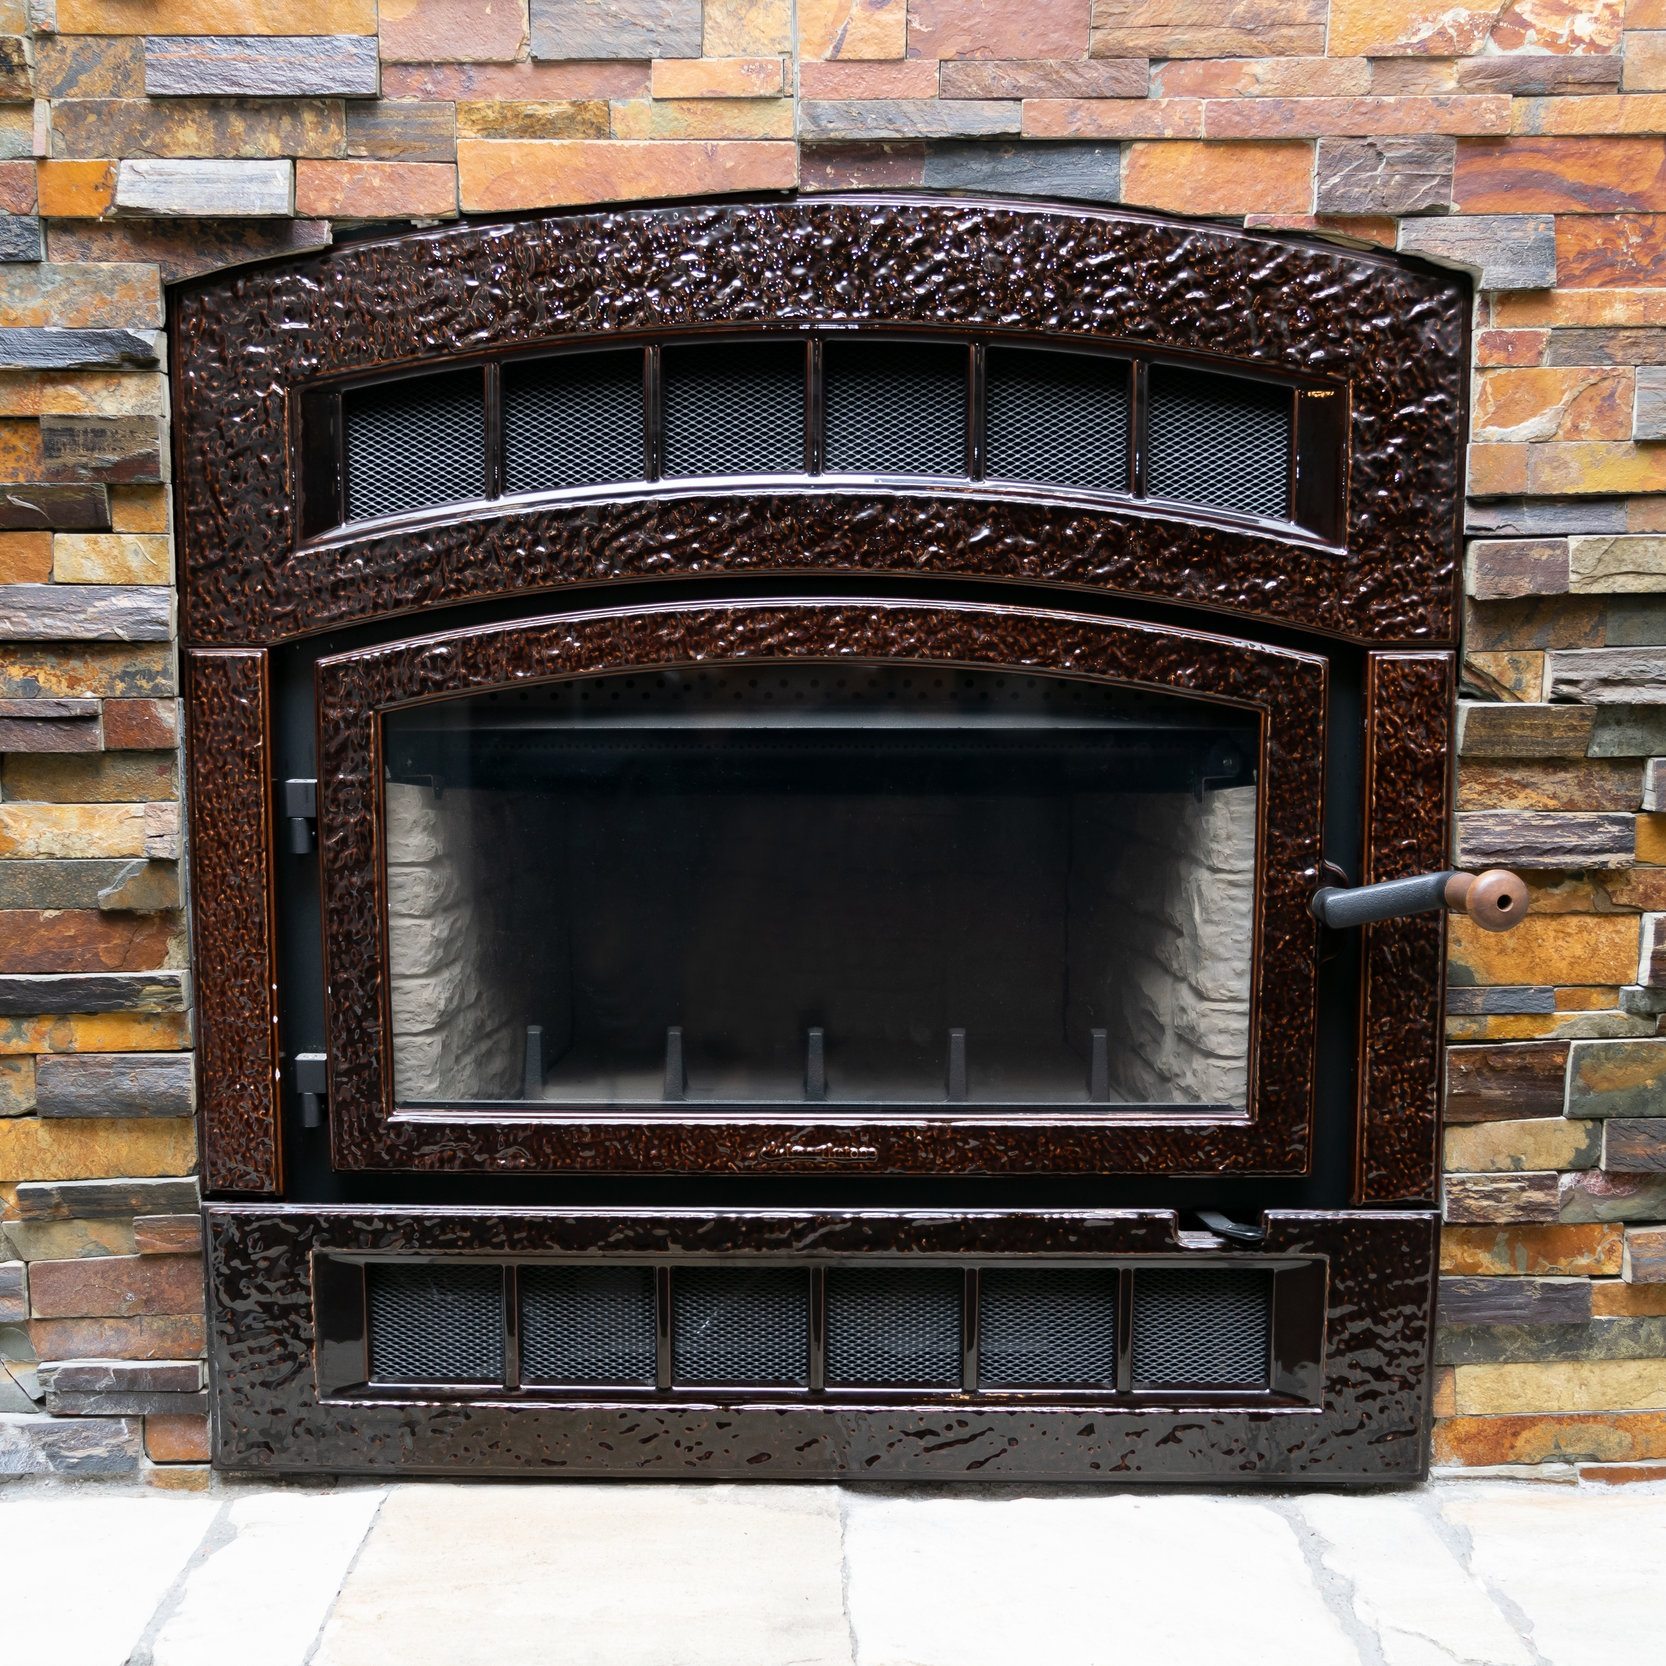 "Hearthstone Montgomery 75 - ‧ Wood Fireplace - 75,000 BTU‧ Brown Majolica Enamel‧ 2.5 cu ft Firebox‧ 20"" Logs‧ Optional heat-circulating blower‧ Cast Iron Faceplate‧ Single-door design‧ Ledgestone interior panel‧ Choice of Black or Brown Enamel"